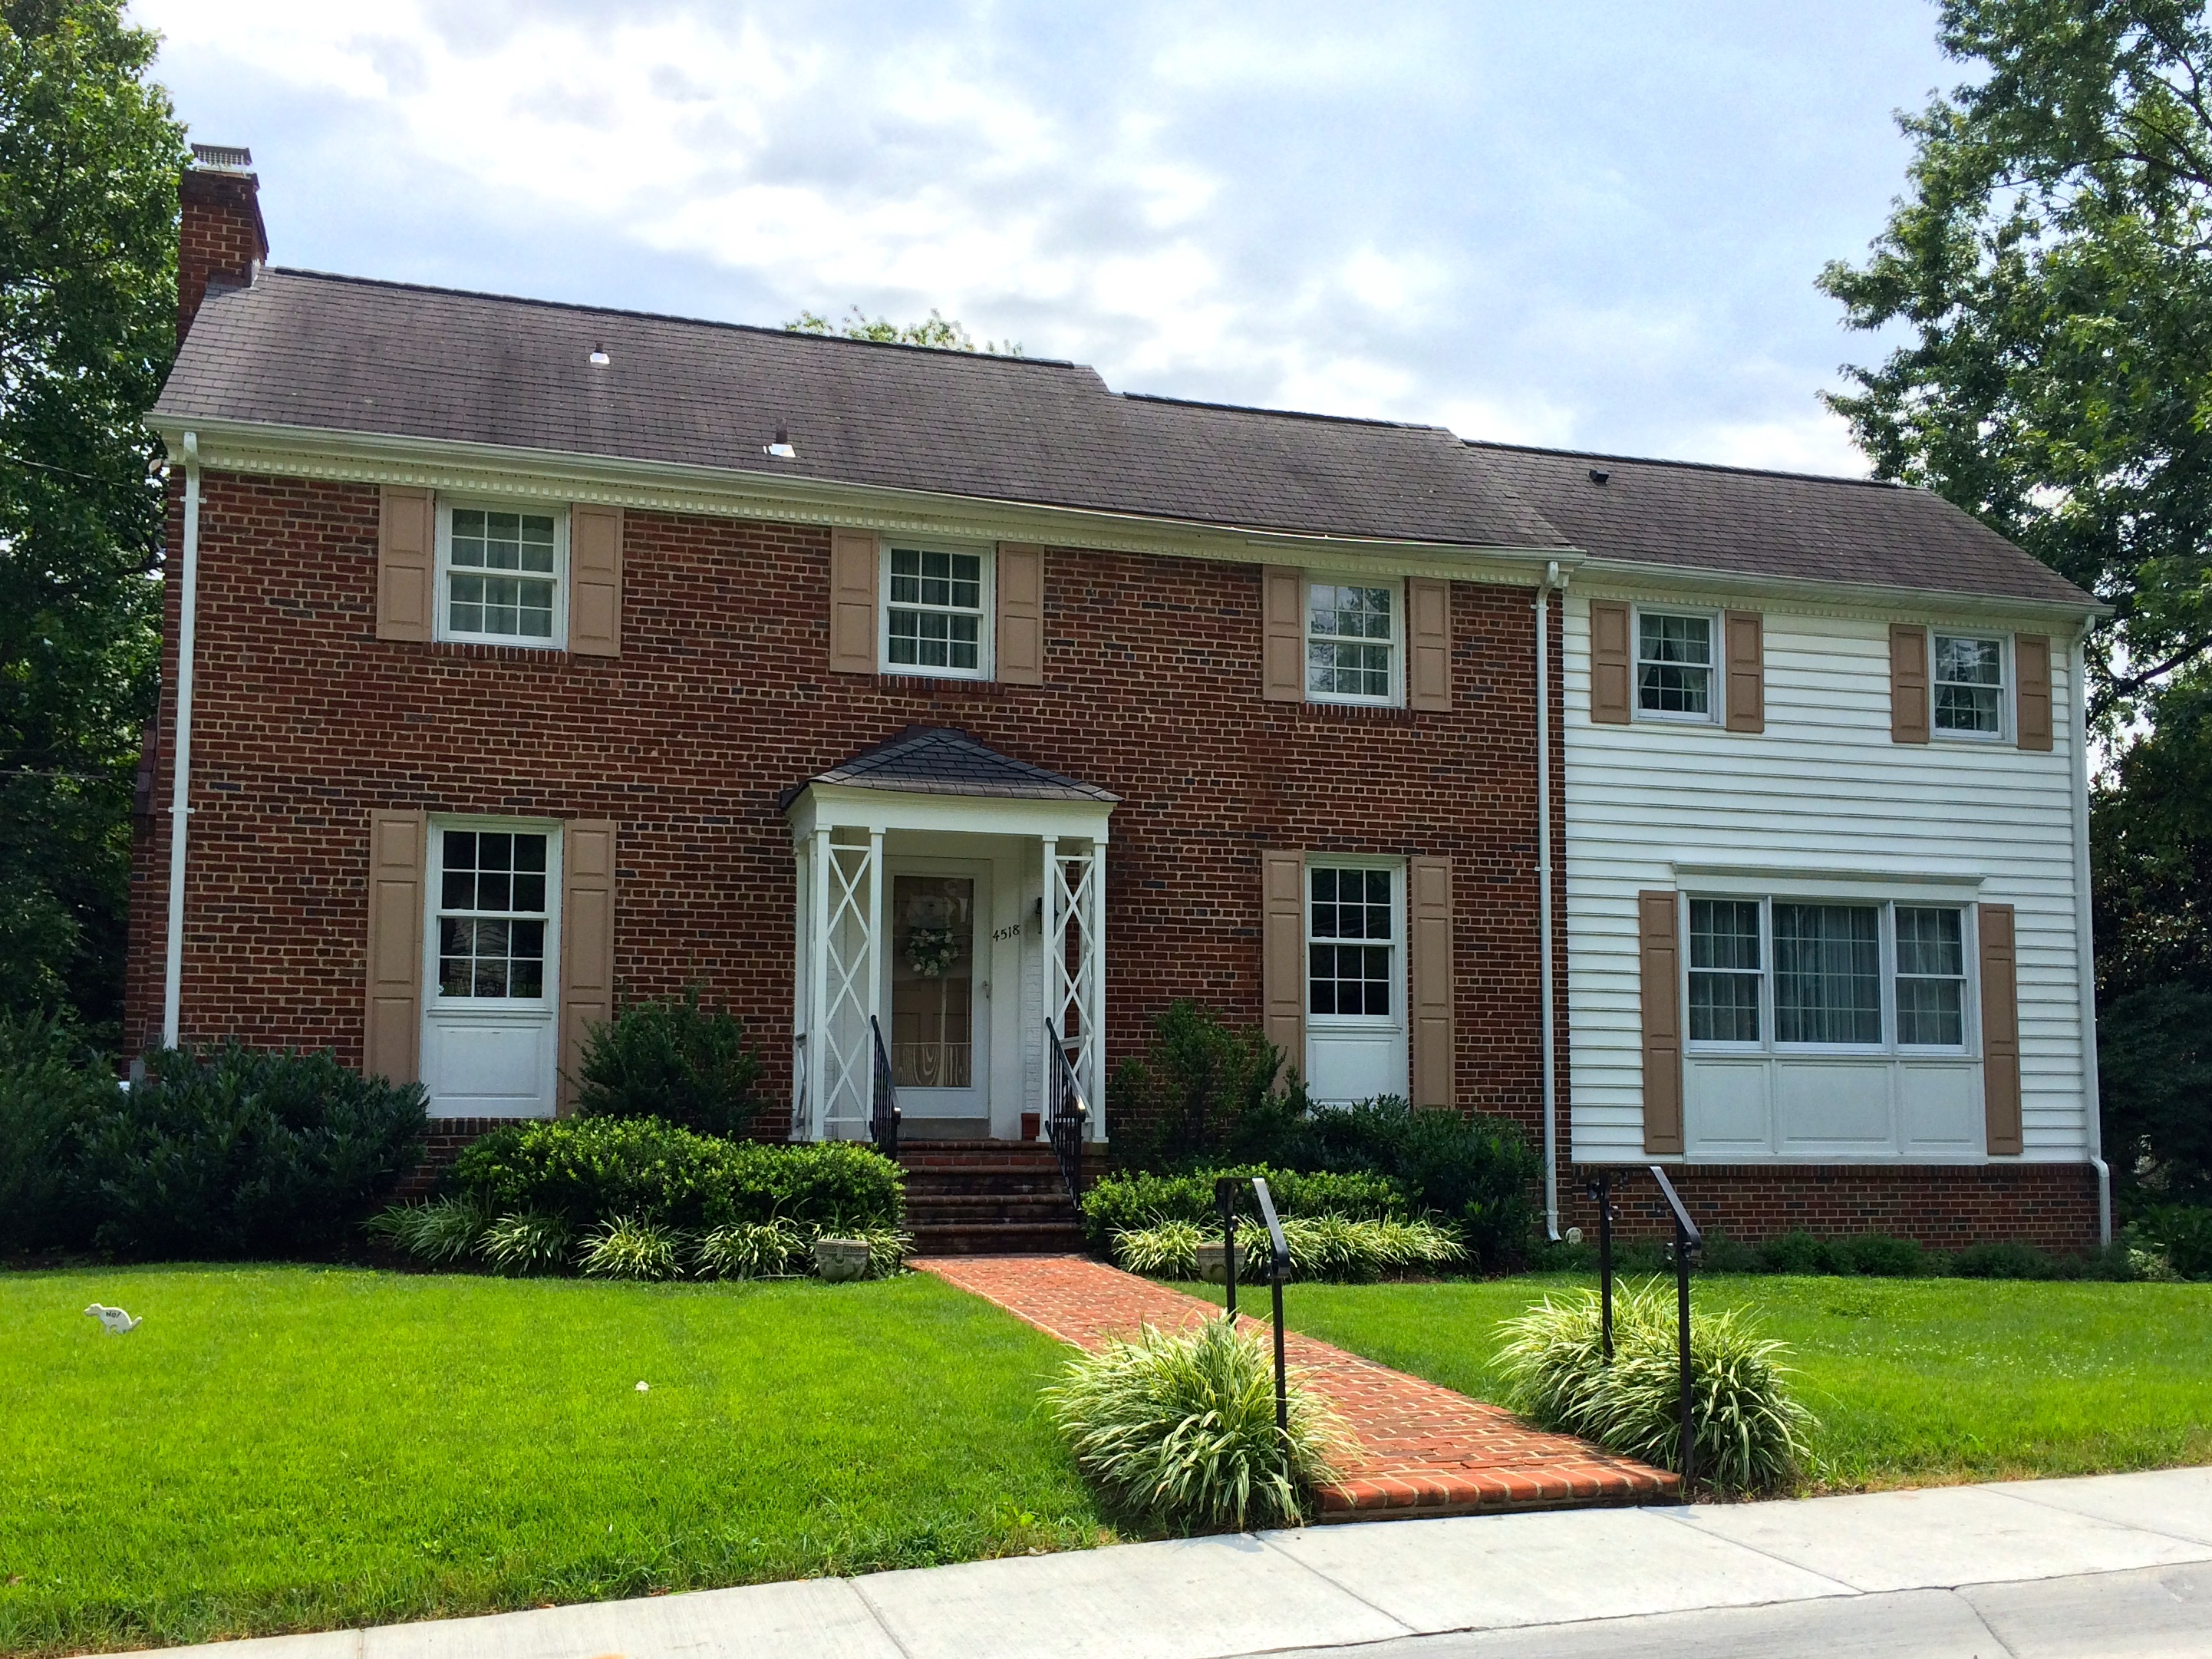 East Bethesda MD 20814 Homes for Sale 7/31/15 – BCCDC Real Estate ...